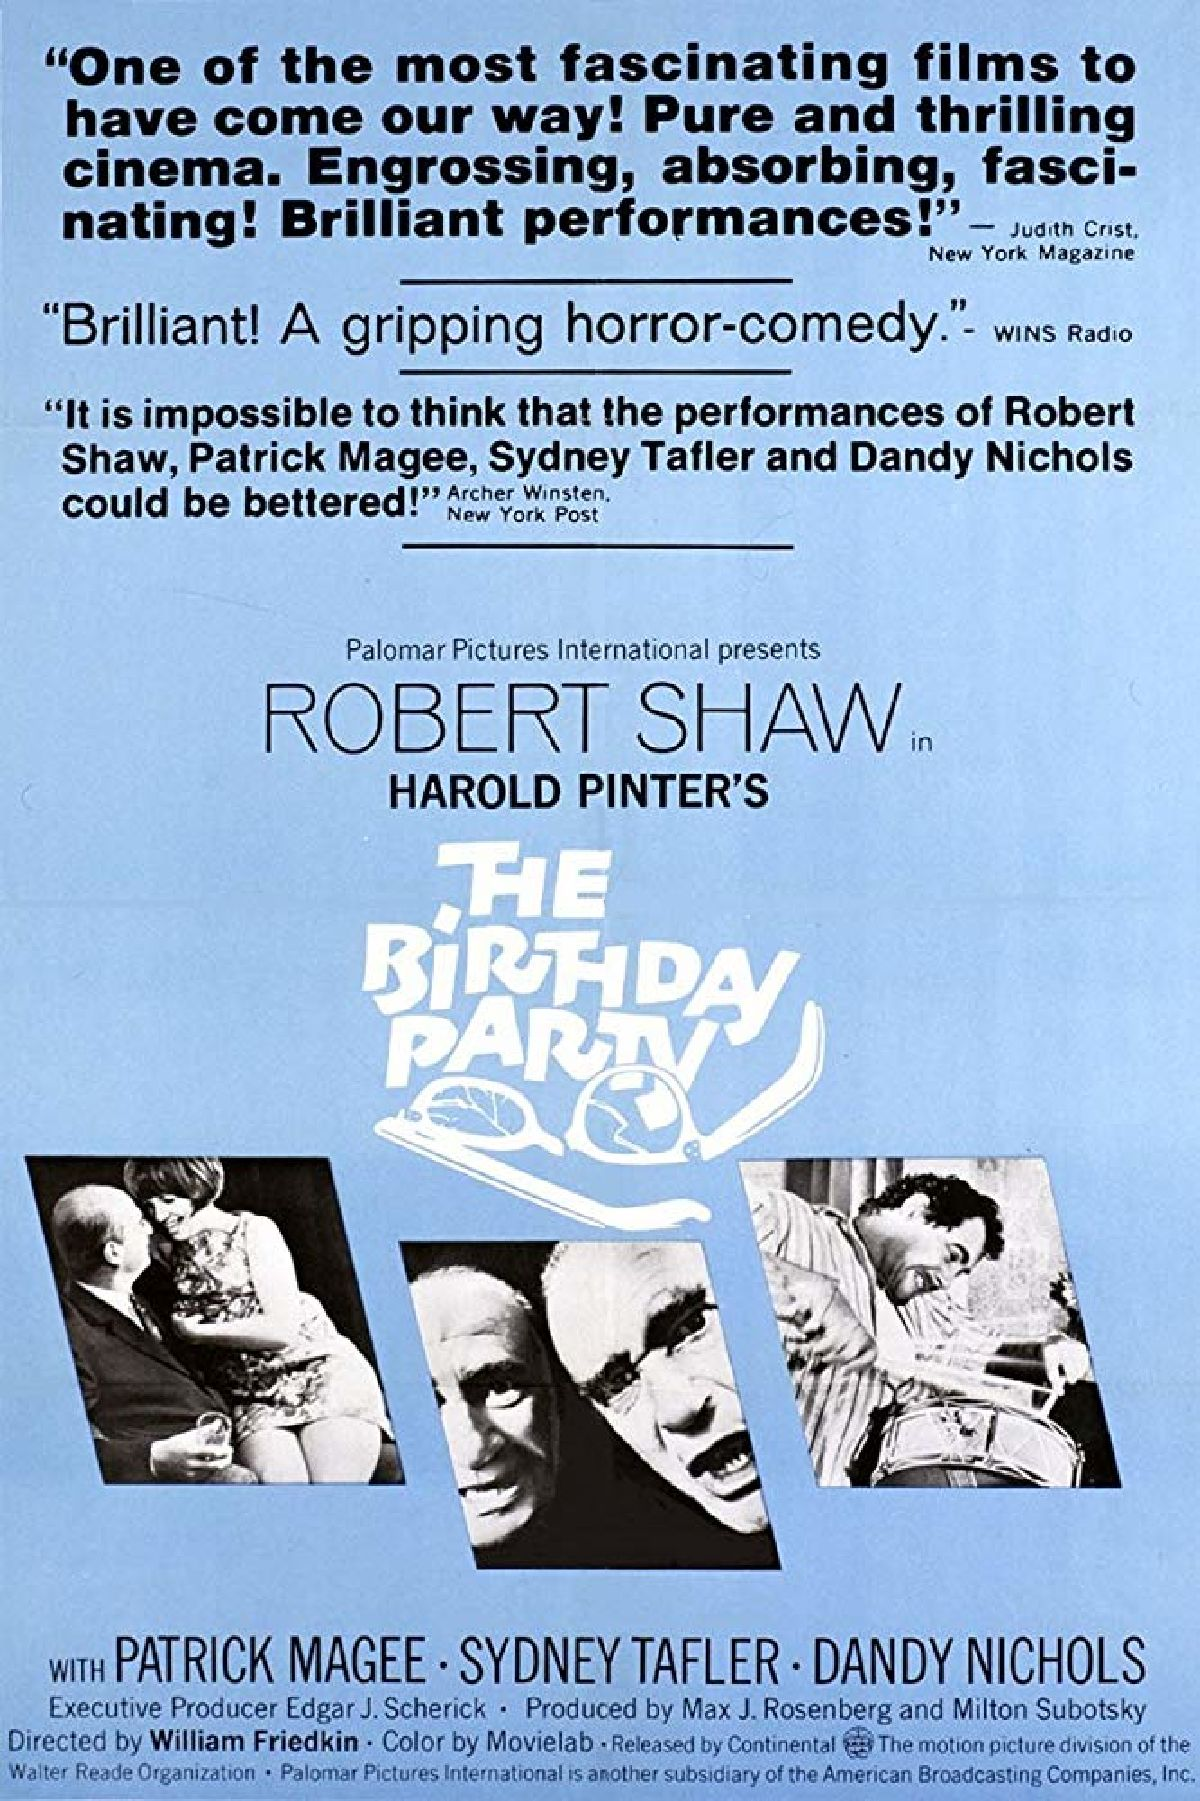 'The Birthday Party' movie poster